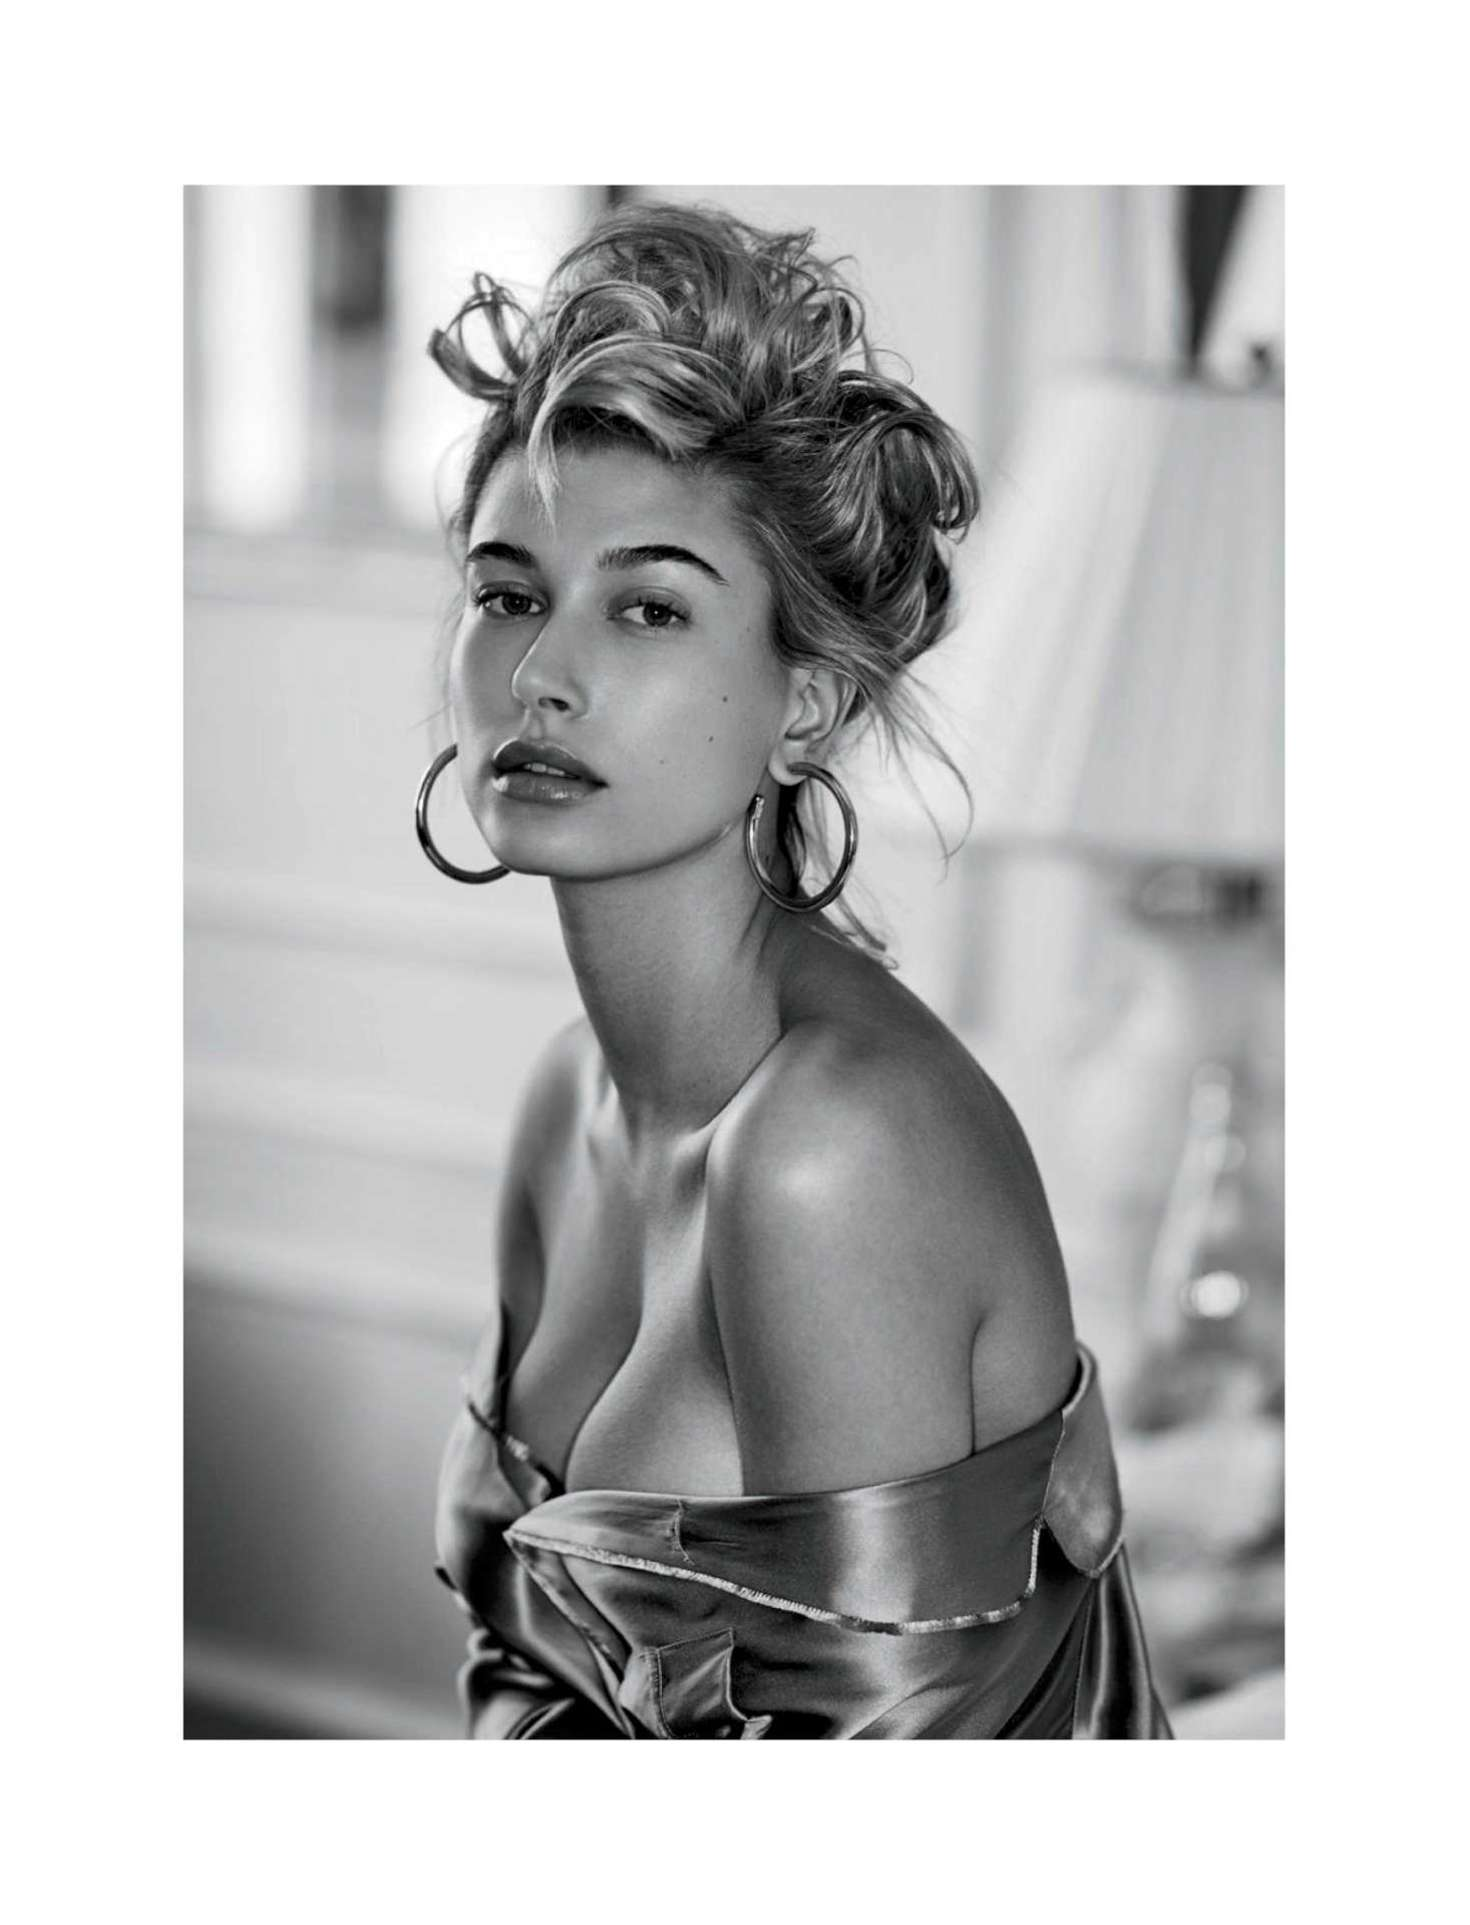 Hailey baldwin in maxim mexico magazine august 2019 new images